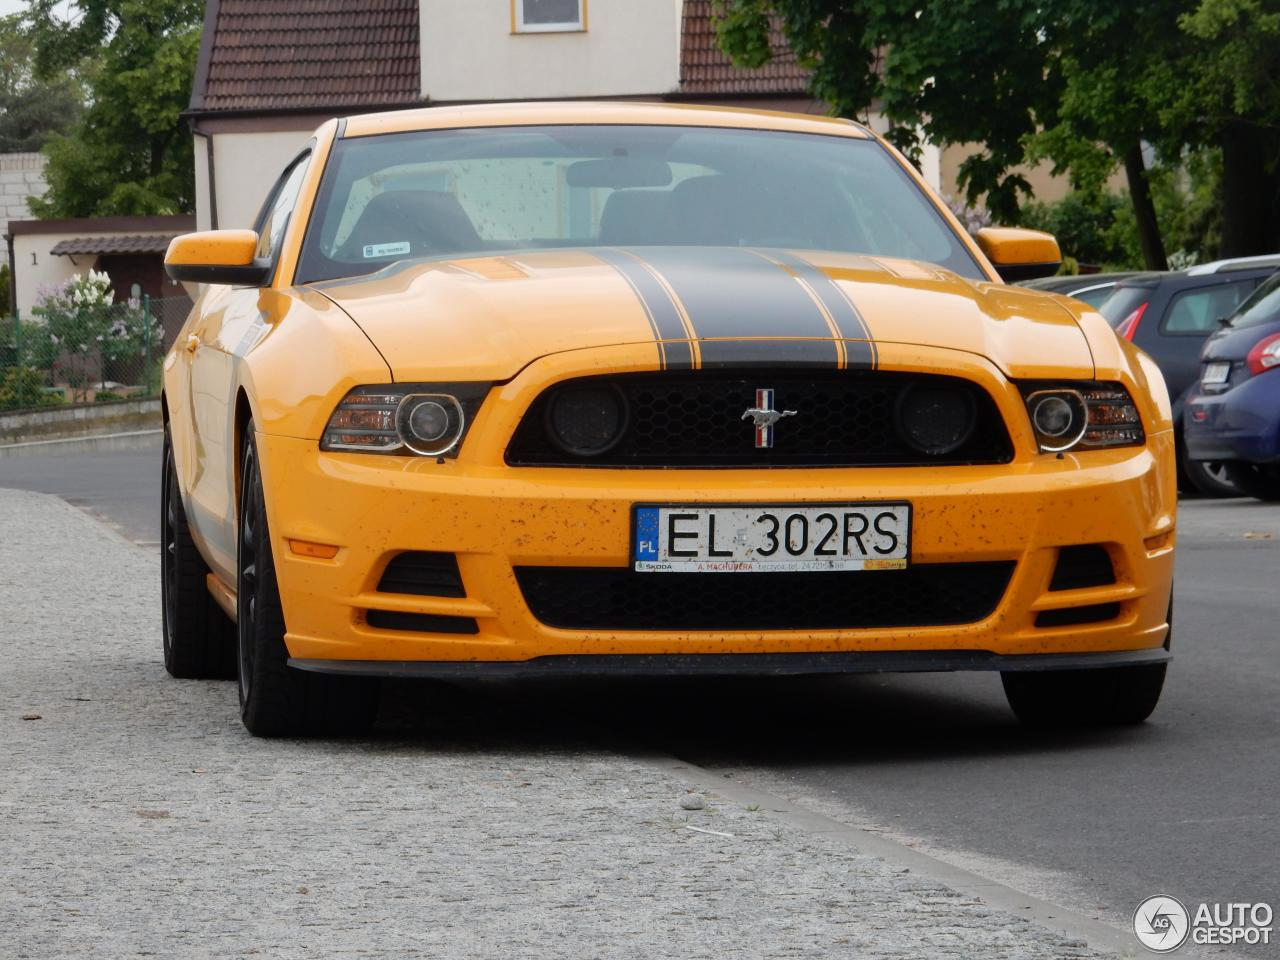 ford mustang boss 302 2013 26 may 2016 autogespot. Black Bedroom Furniture Sets. Home Design Ideas